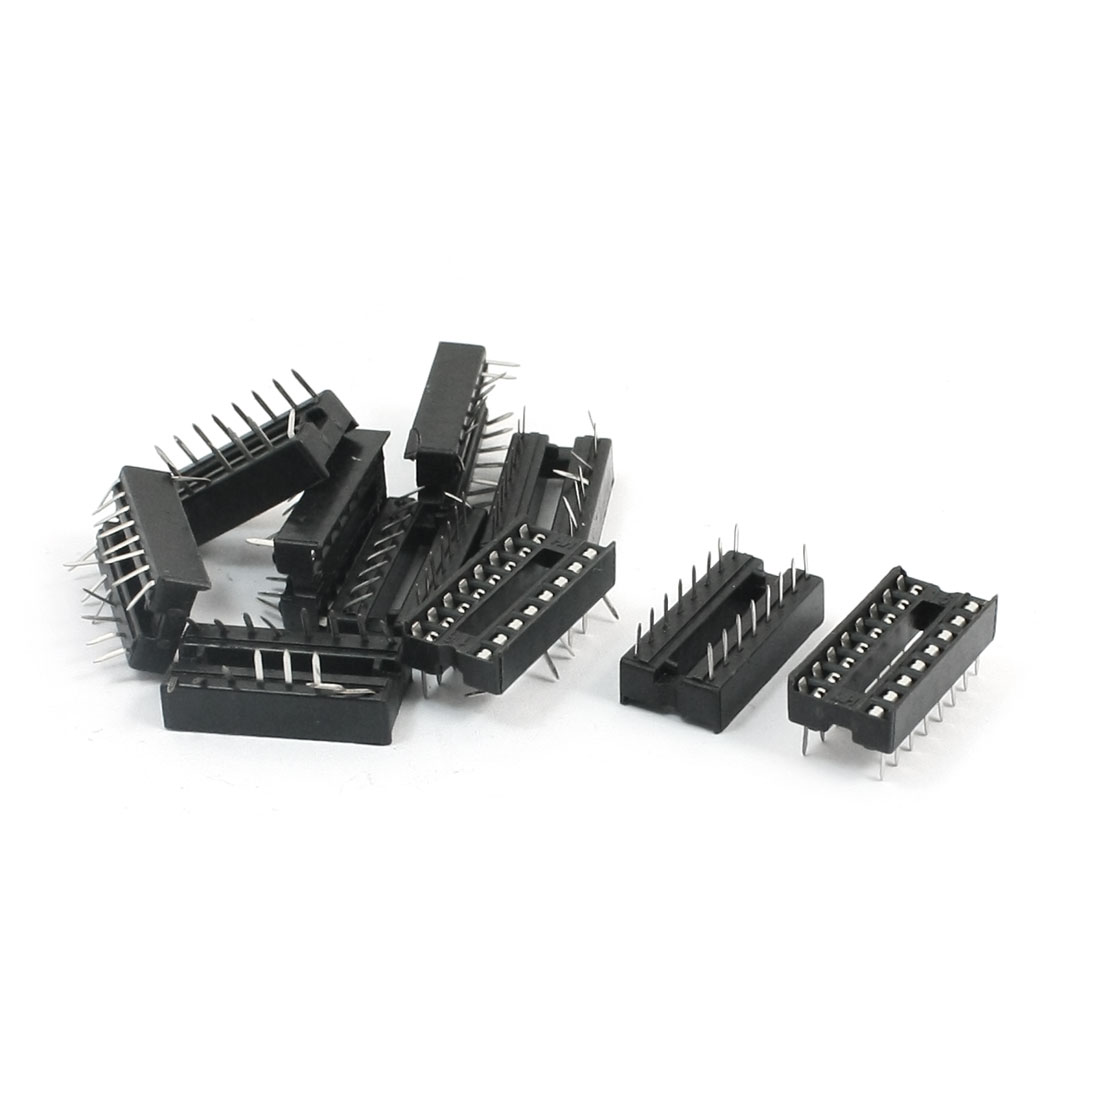 10 Pieces 2.54mm Pitch 16 Pins Double Row DIP IC Socket Adapter Solder